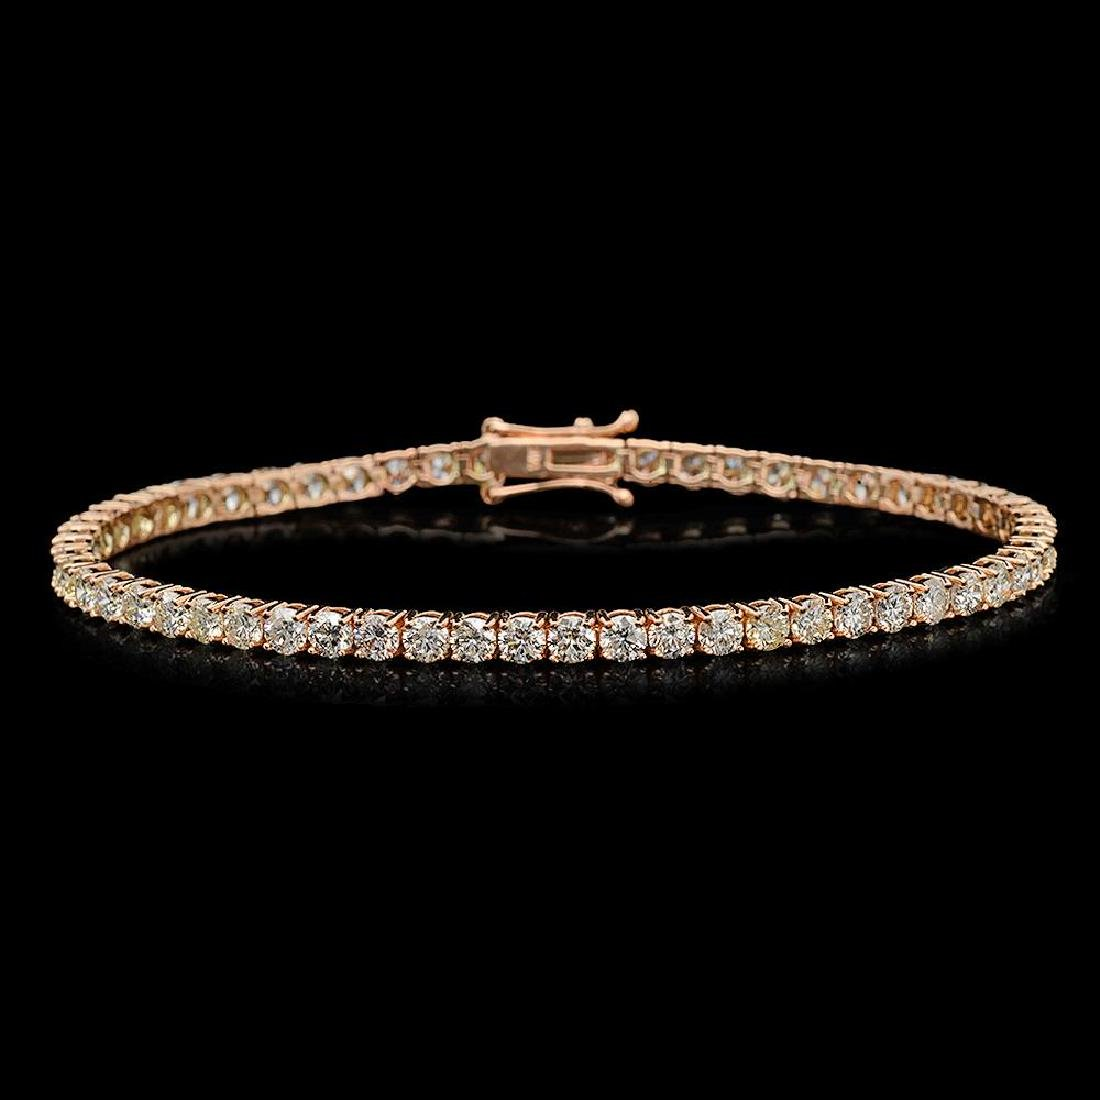 14K Gold 6.28ct Diamond Bracelet